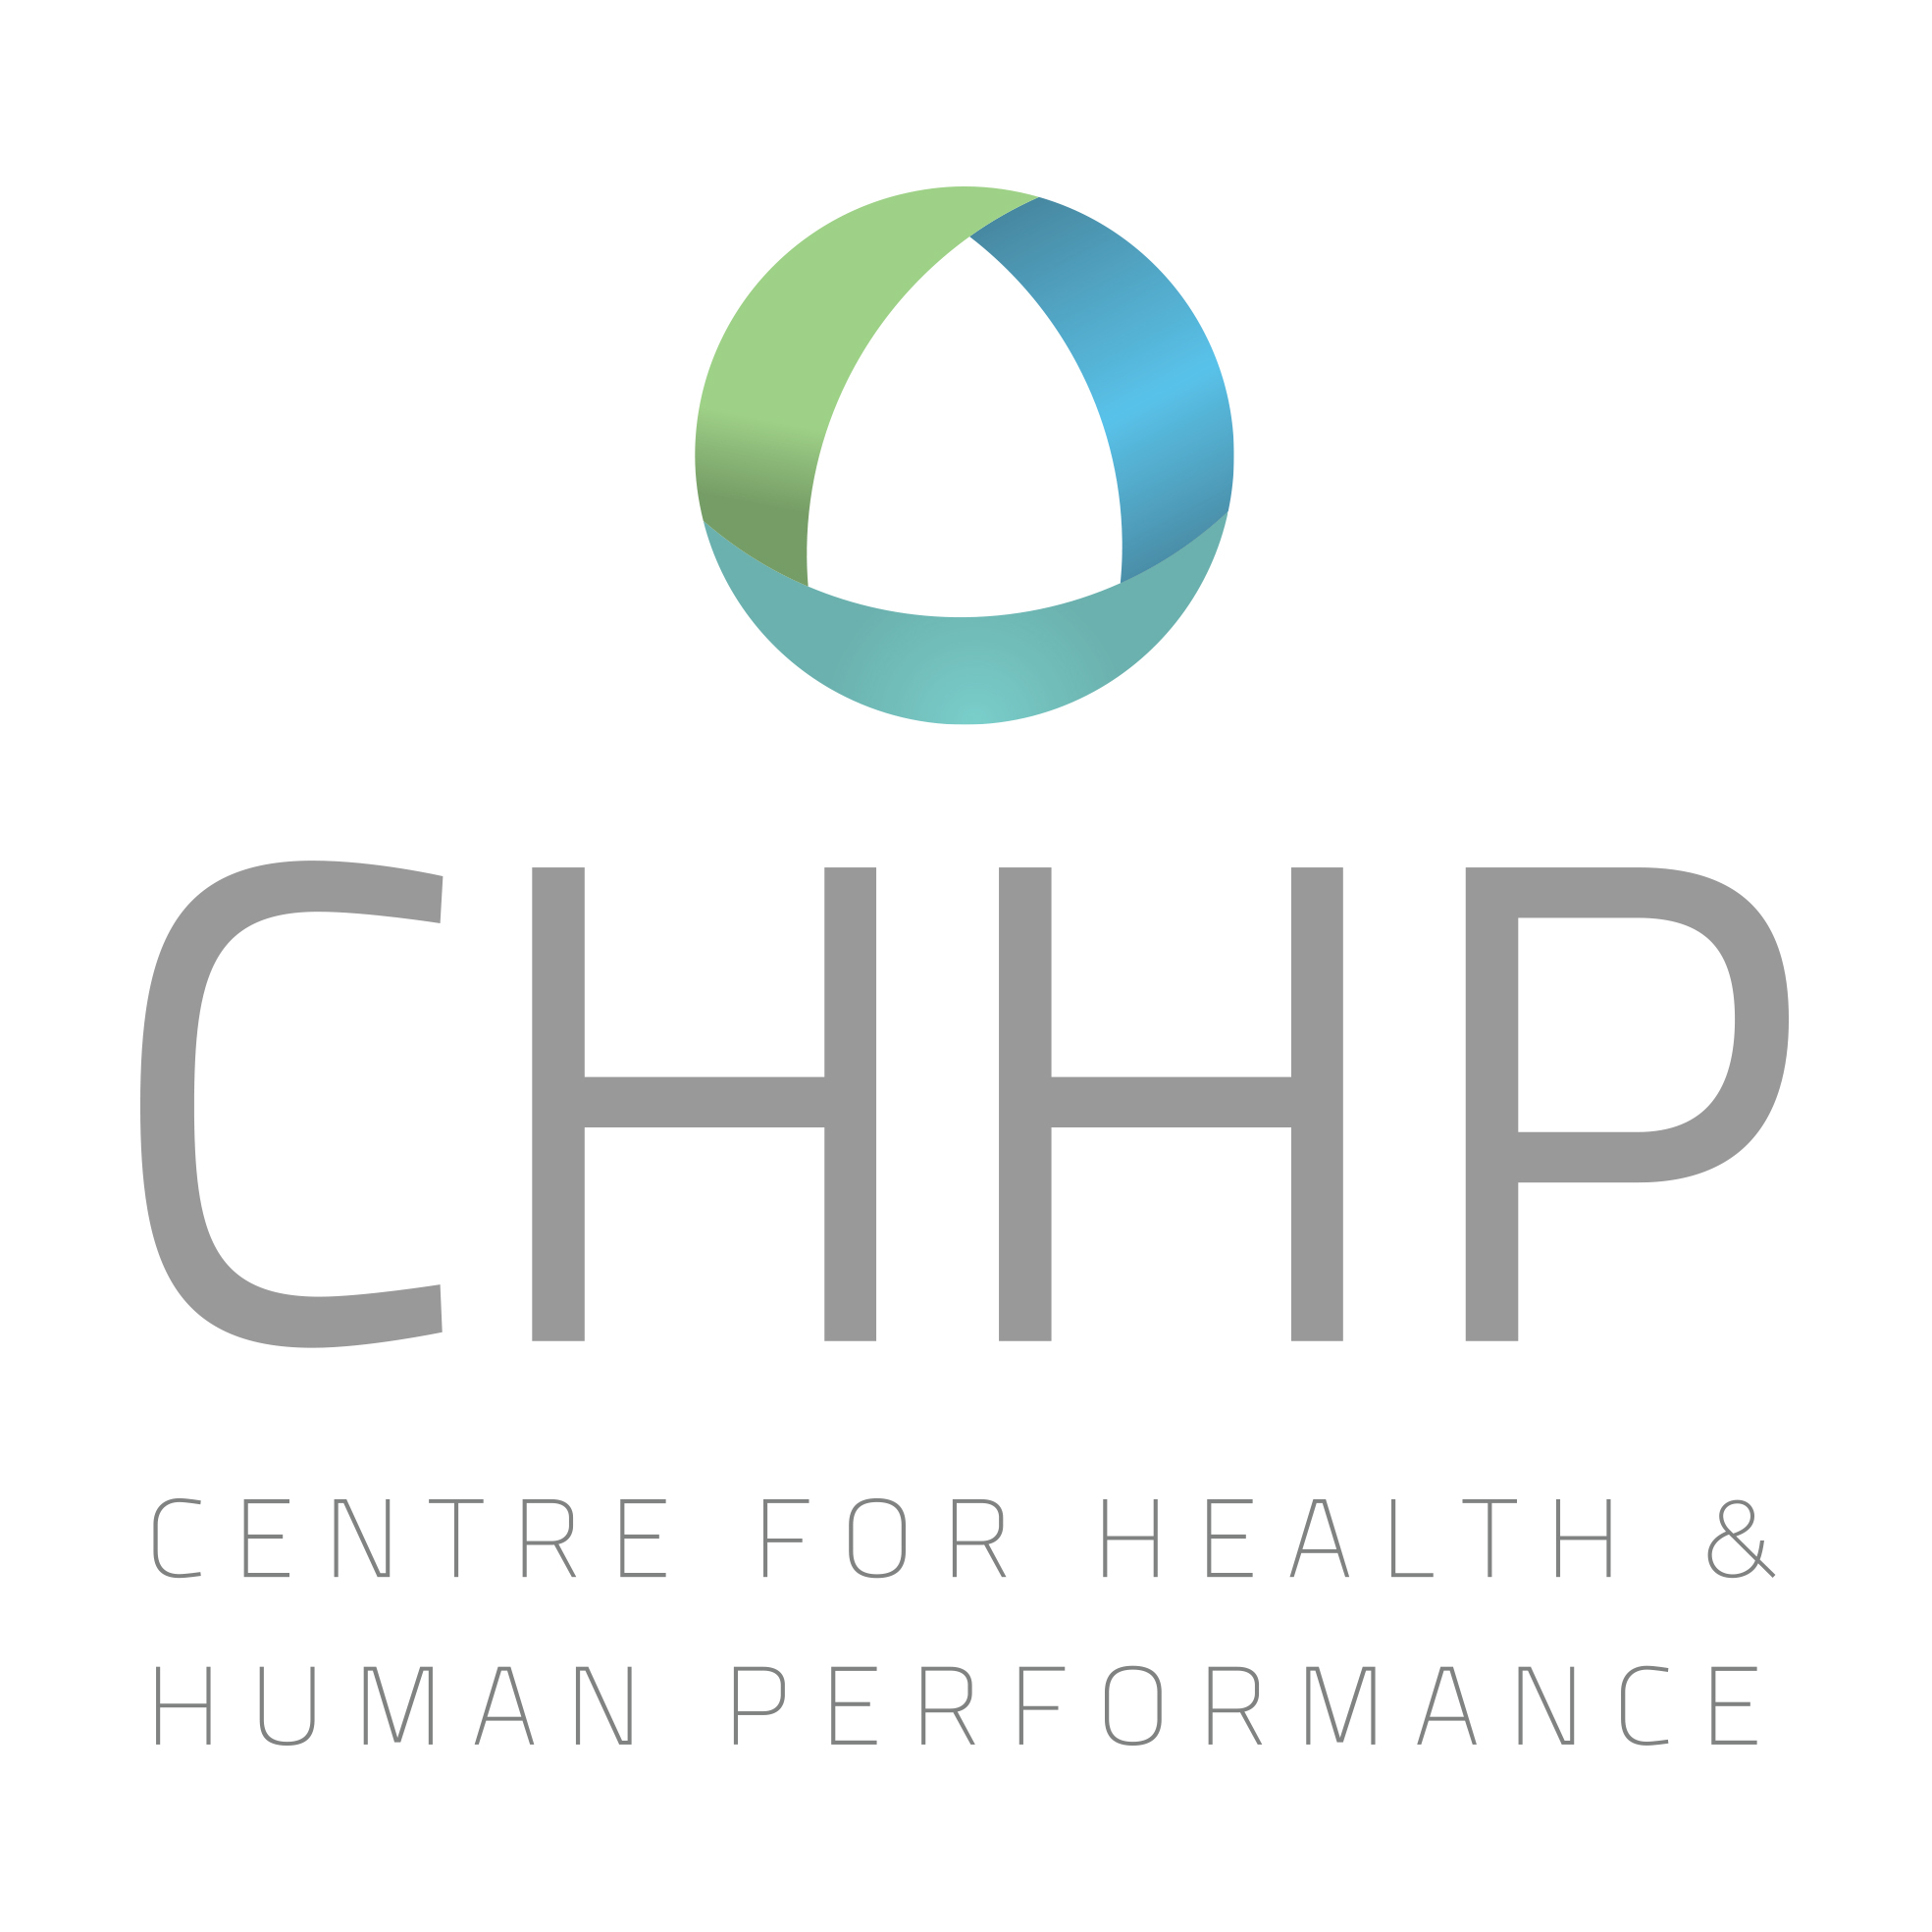 Centre for Health and Human Performance